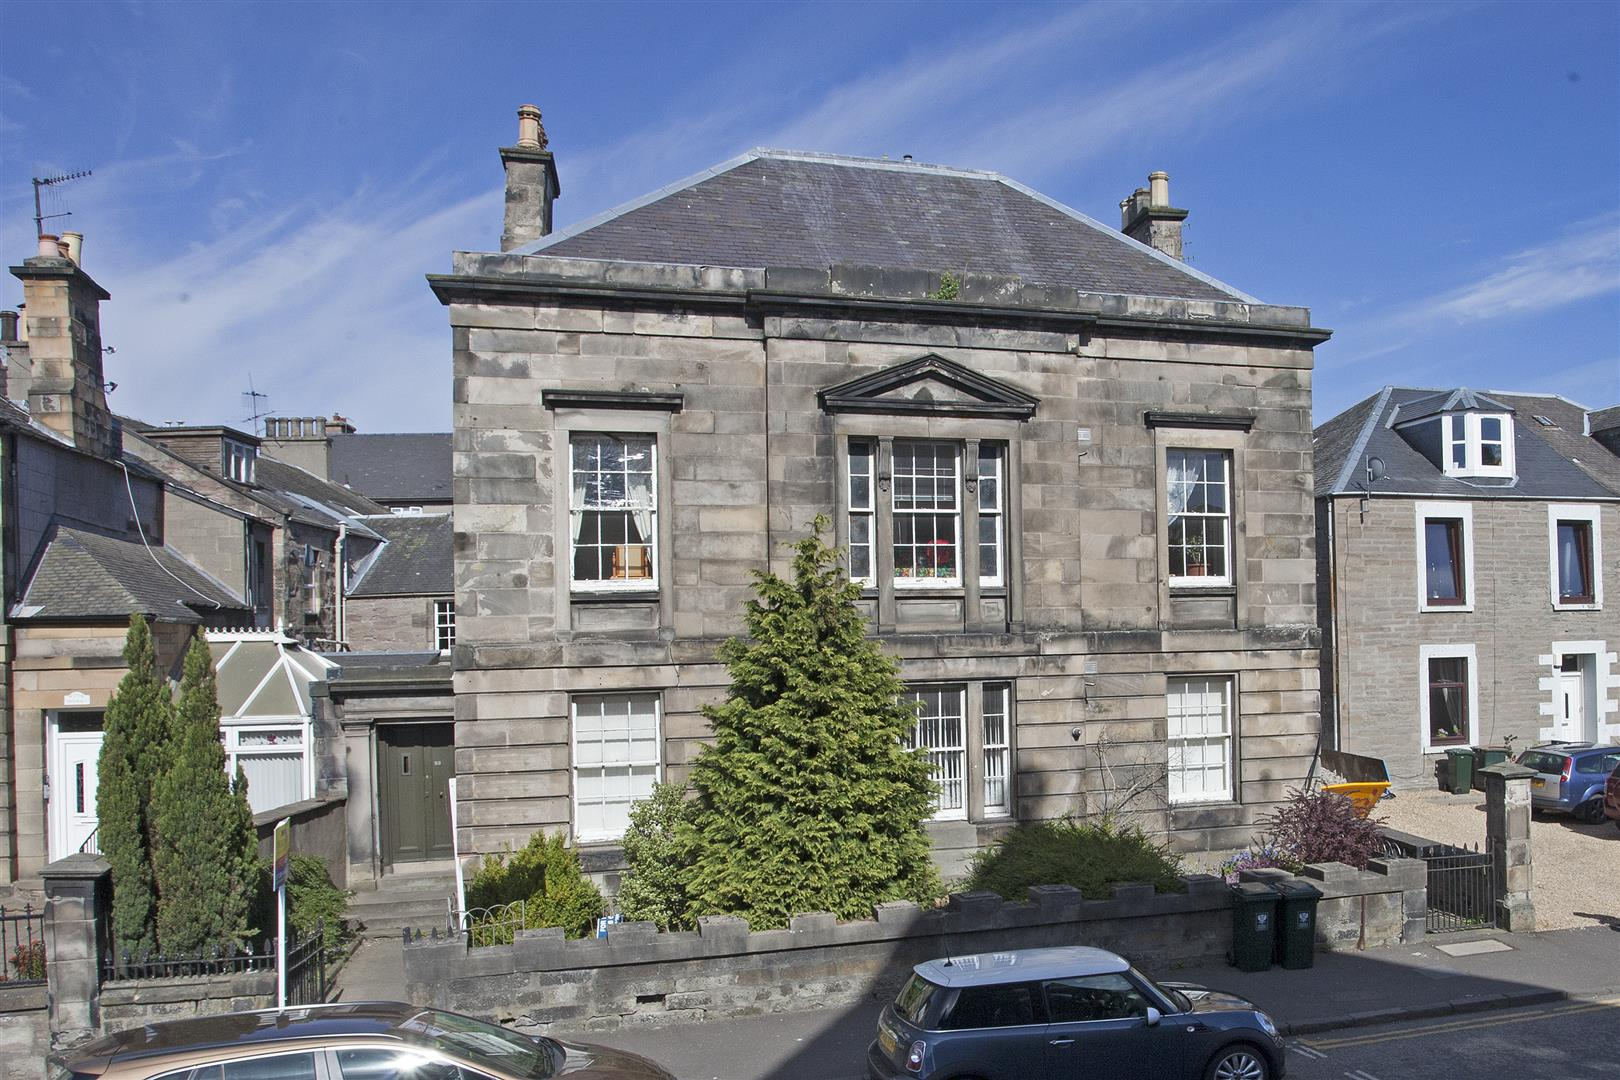 23E, Melville Street, Perth, Perthshire, PH1 5PY, UK